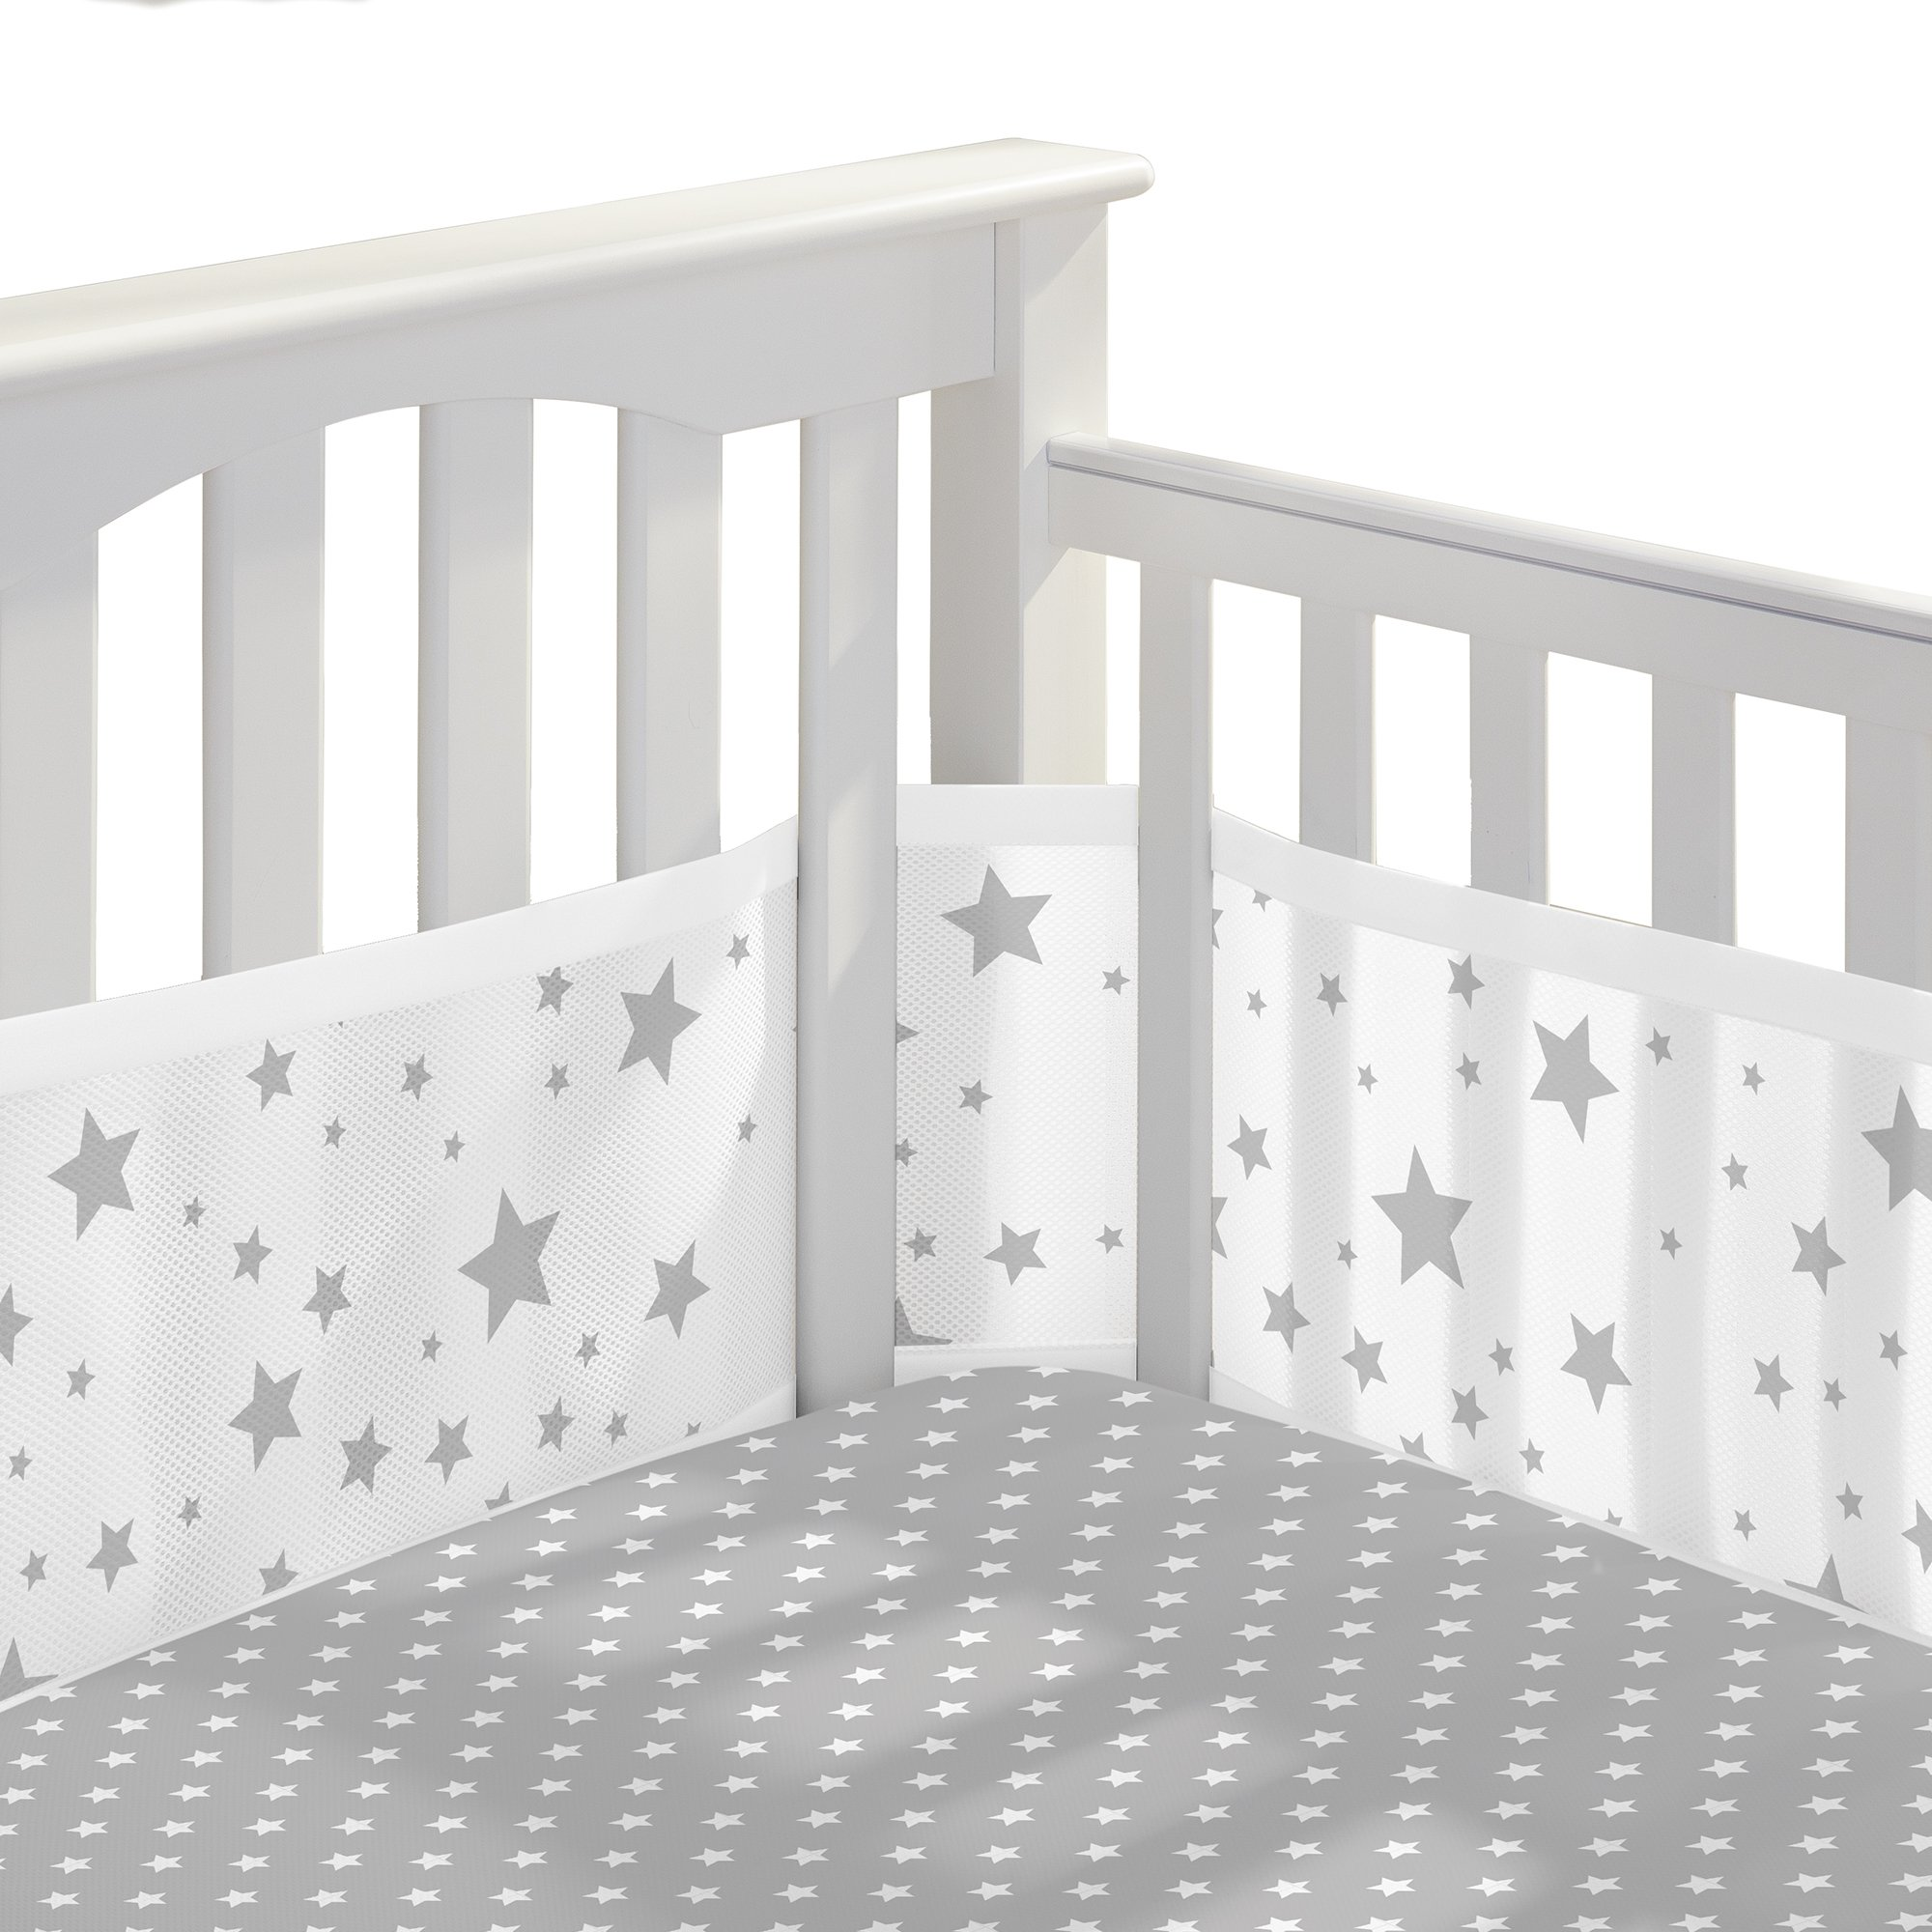 BreathableBaby | Classic Crib Bedding Set | Helps Prevent Arms and Legs from Getting Stuck Between Crib Slats | Independently Tested for Safety | 3 Piece | Star Light White and Gray